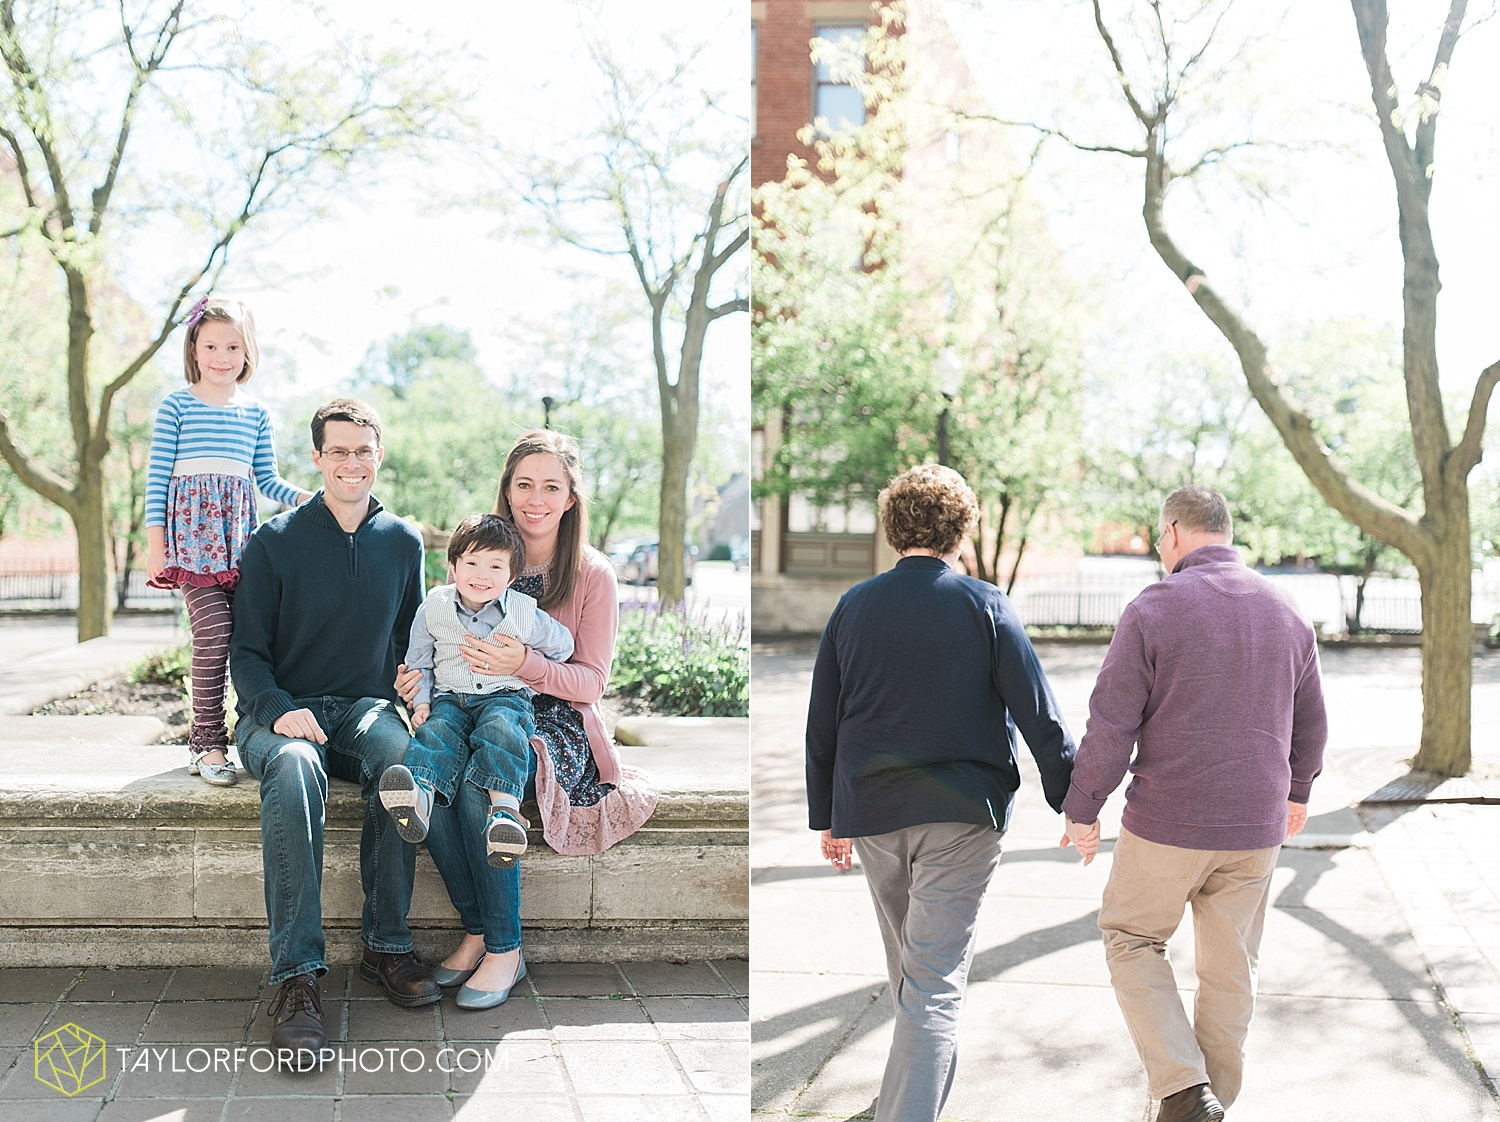 fort-wayne-indiana-family-photographer-taylor-ford-photography-van-wert-lima-ohio-soaff-park_1662.jpg